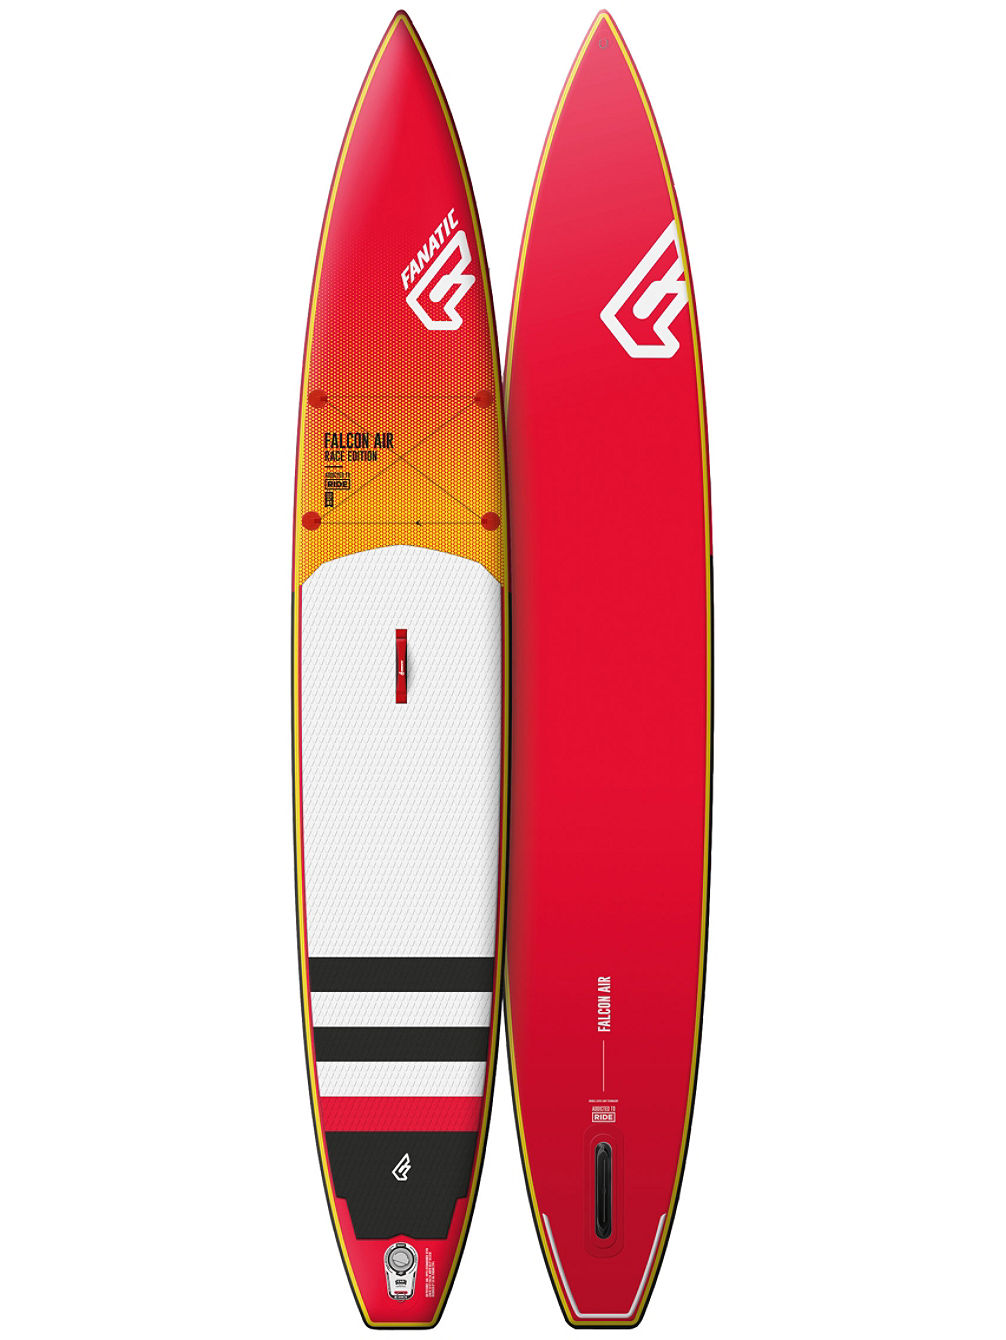 Falcon Air 12.6x26.5 SUP Board